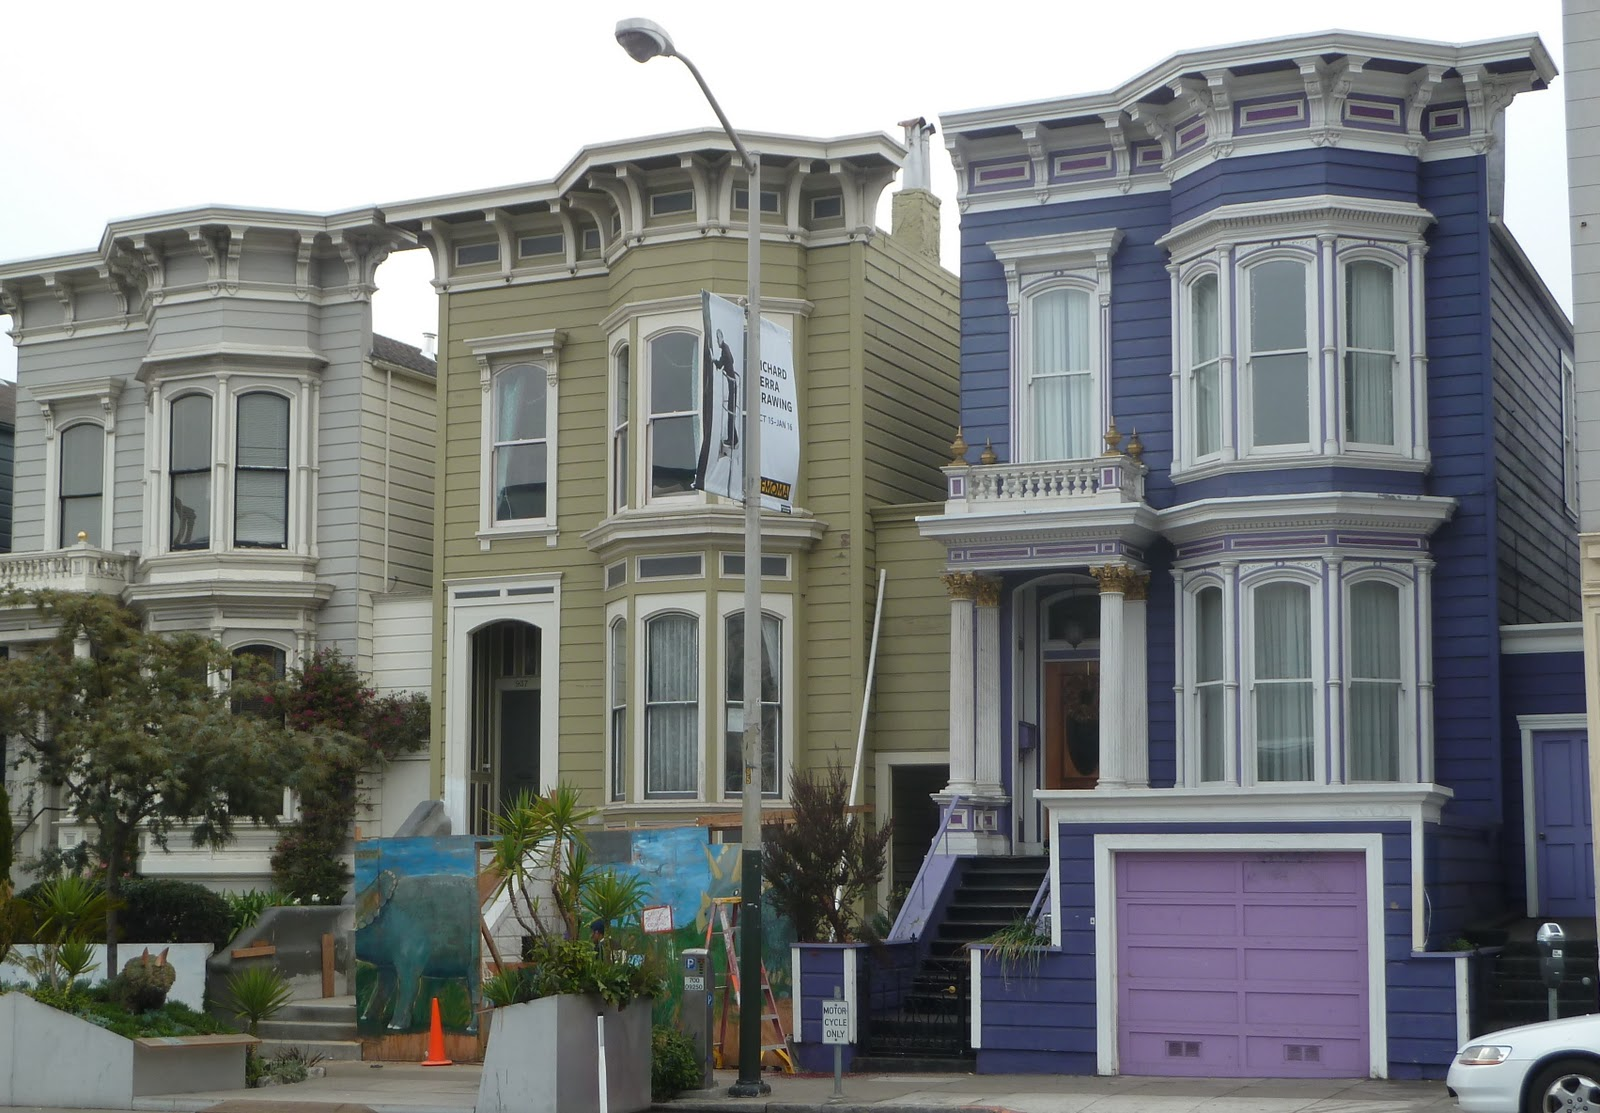 San francisco architecture victorian to edwardian to post Modern victorian architecture